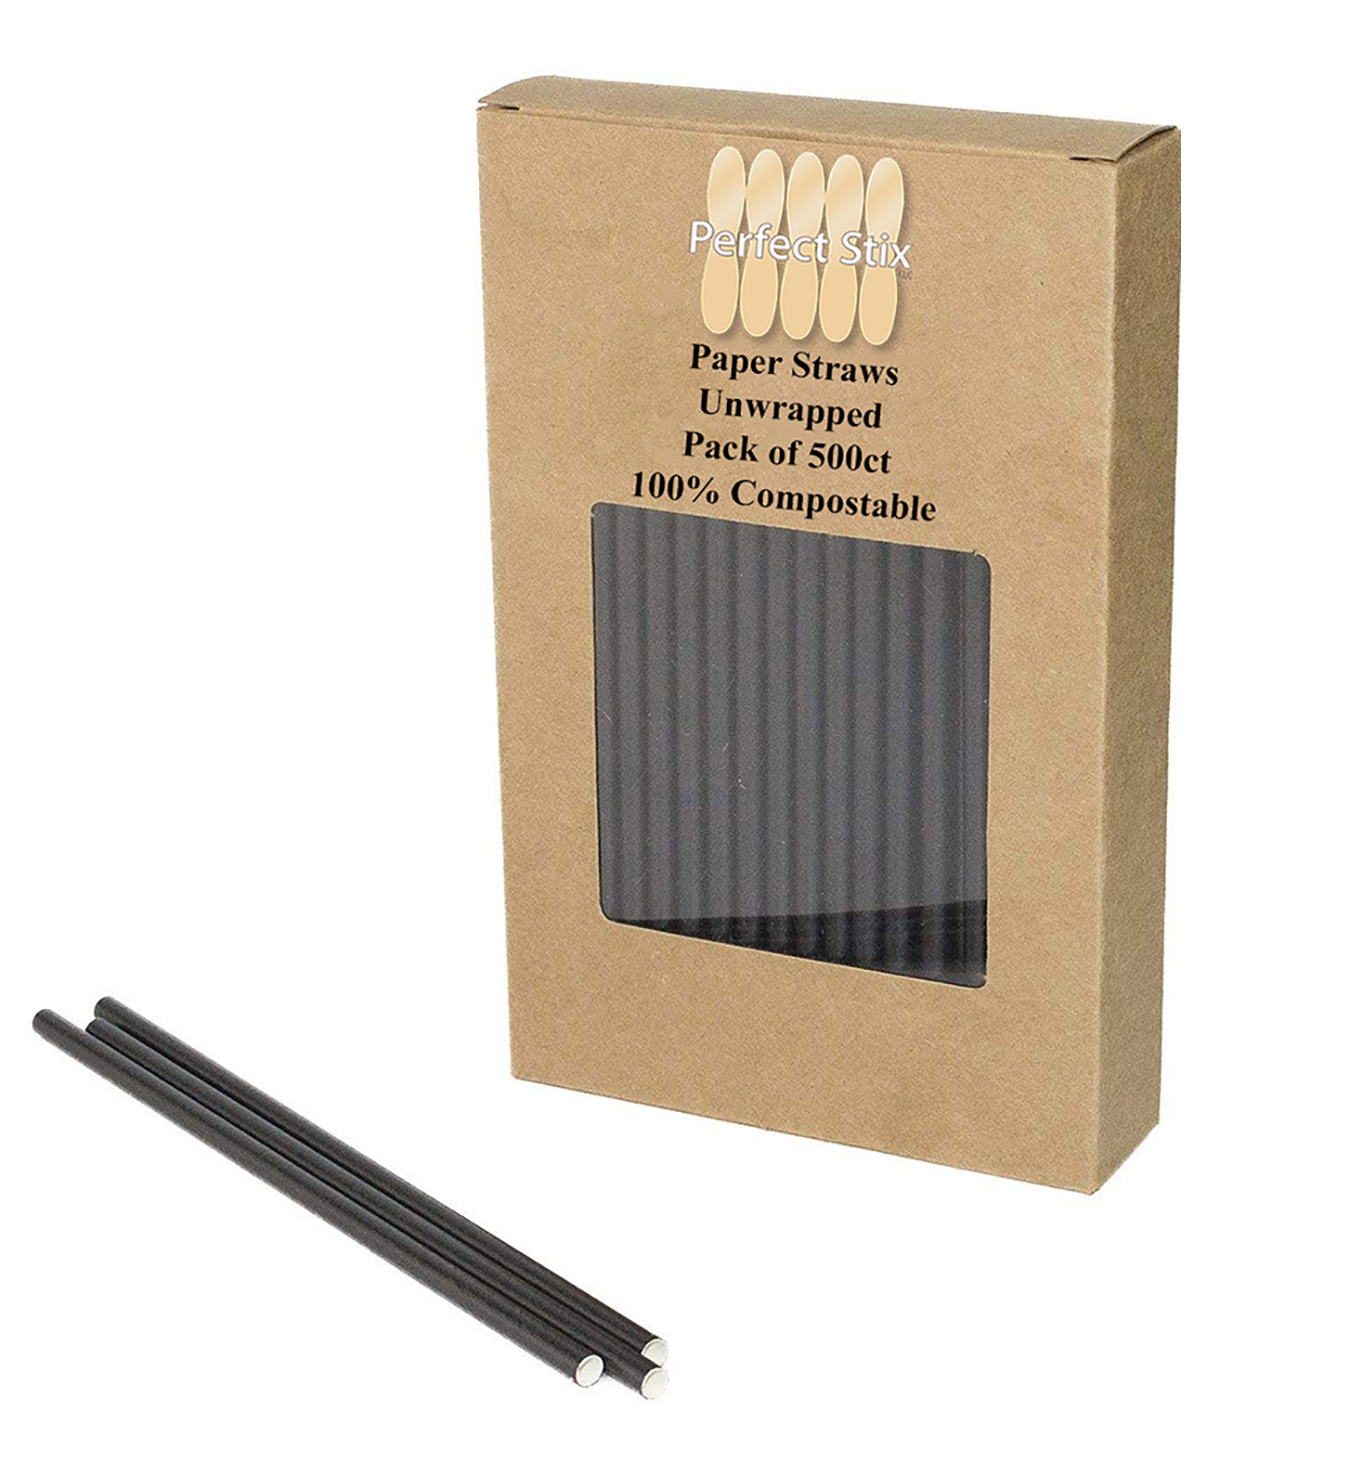 Paper Straw 7.75 Inch Unwrapped Jumbo Black - 1000ct per case